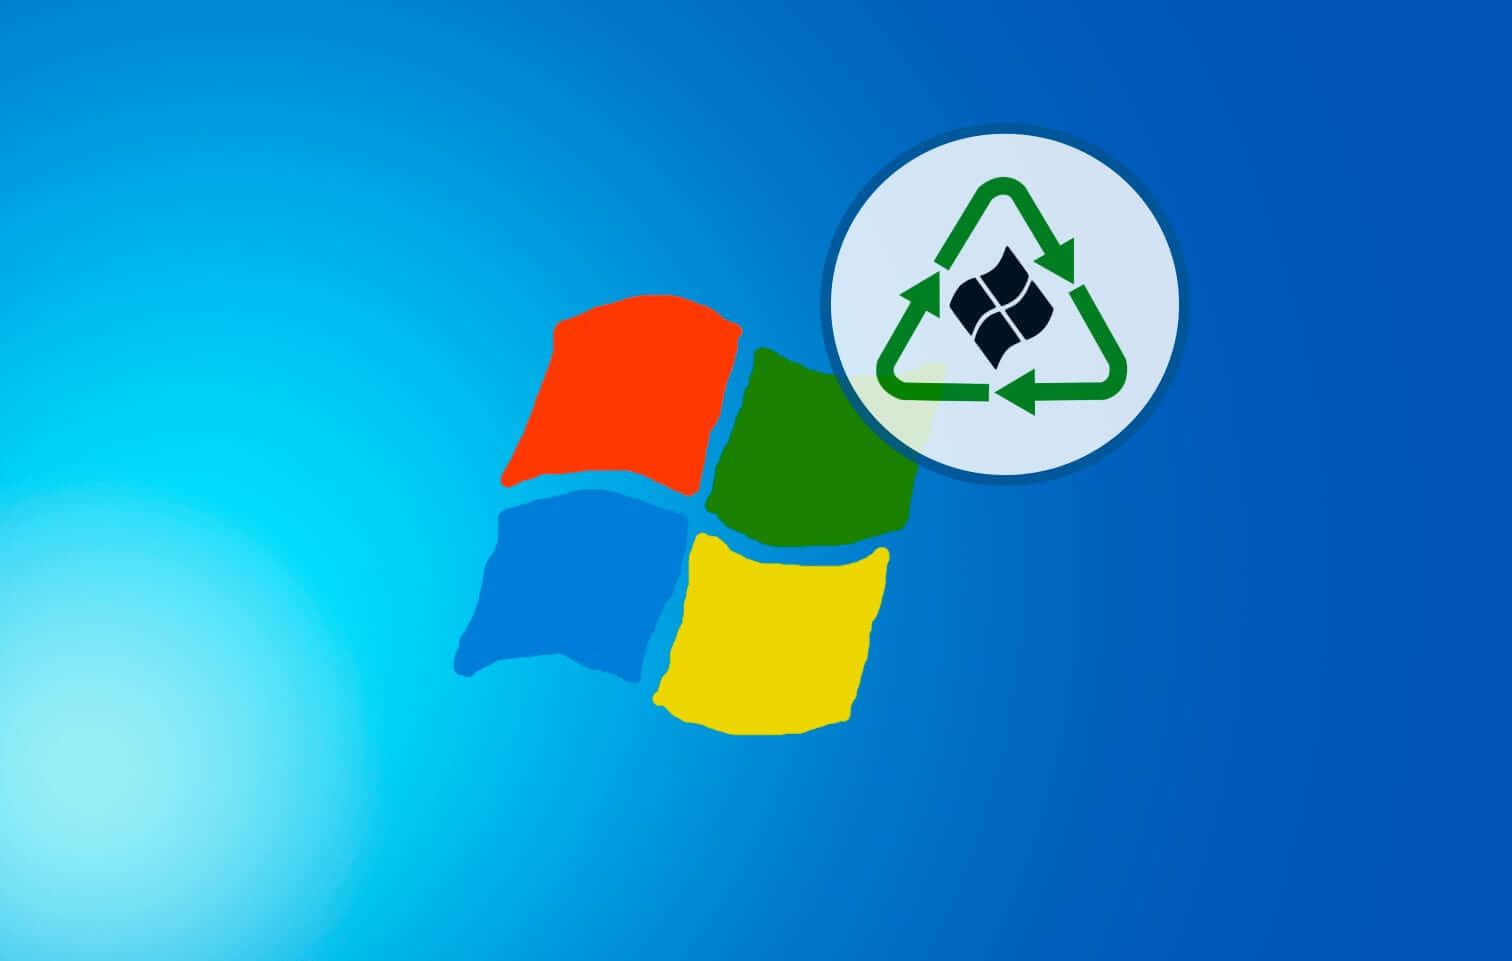 Free Software Foundation 'demands' Windows 7 be released as free software